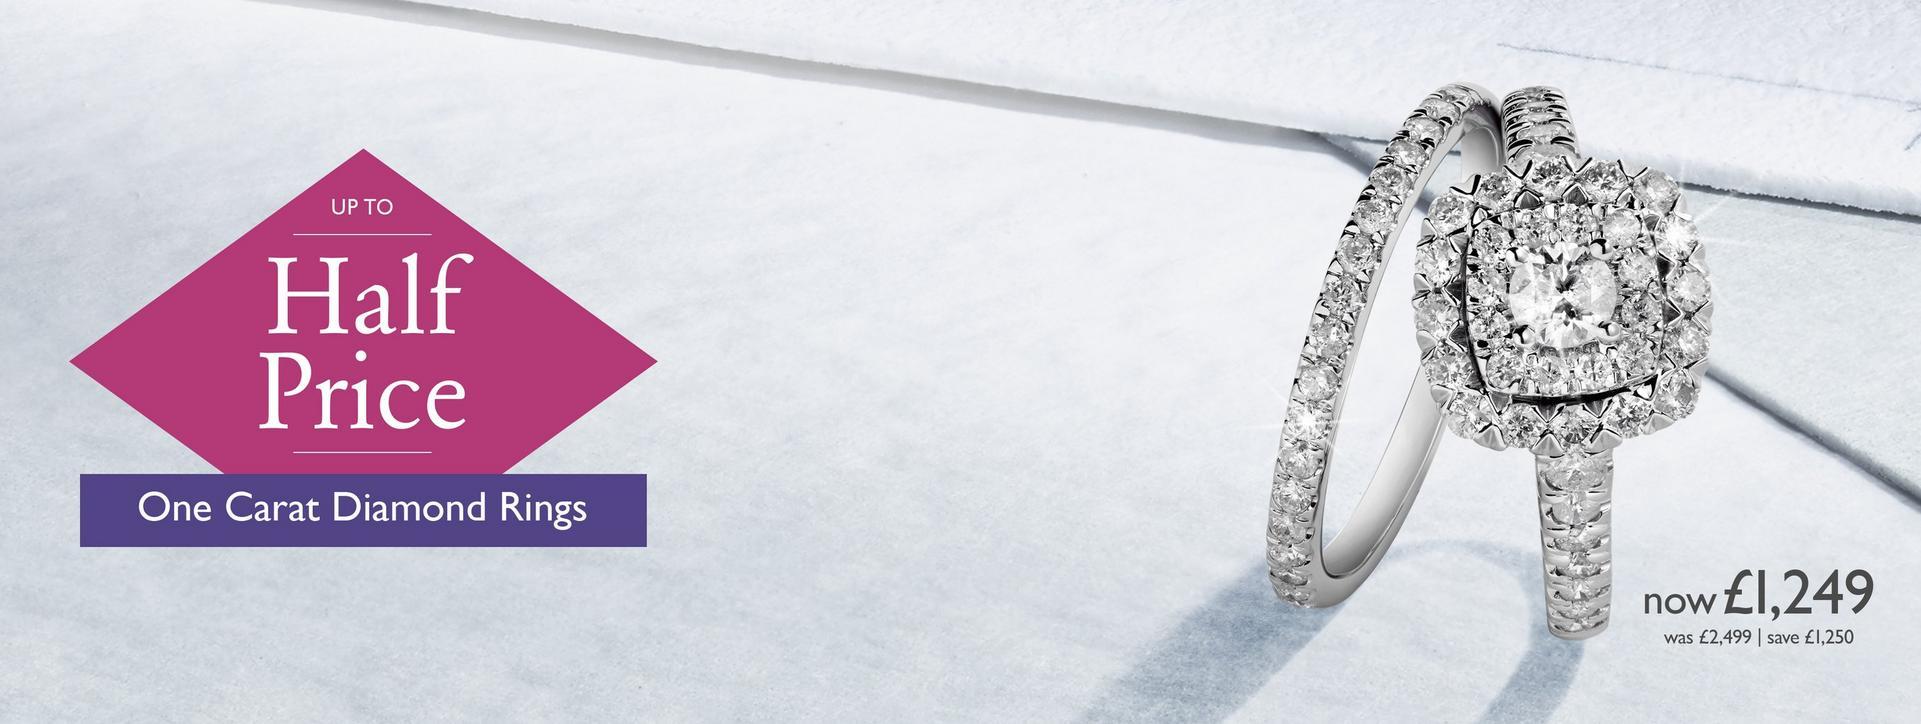 Up to half price one carat diamond rings at Ernest Jones